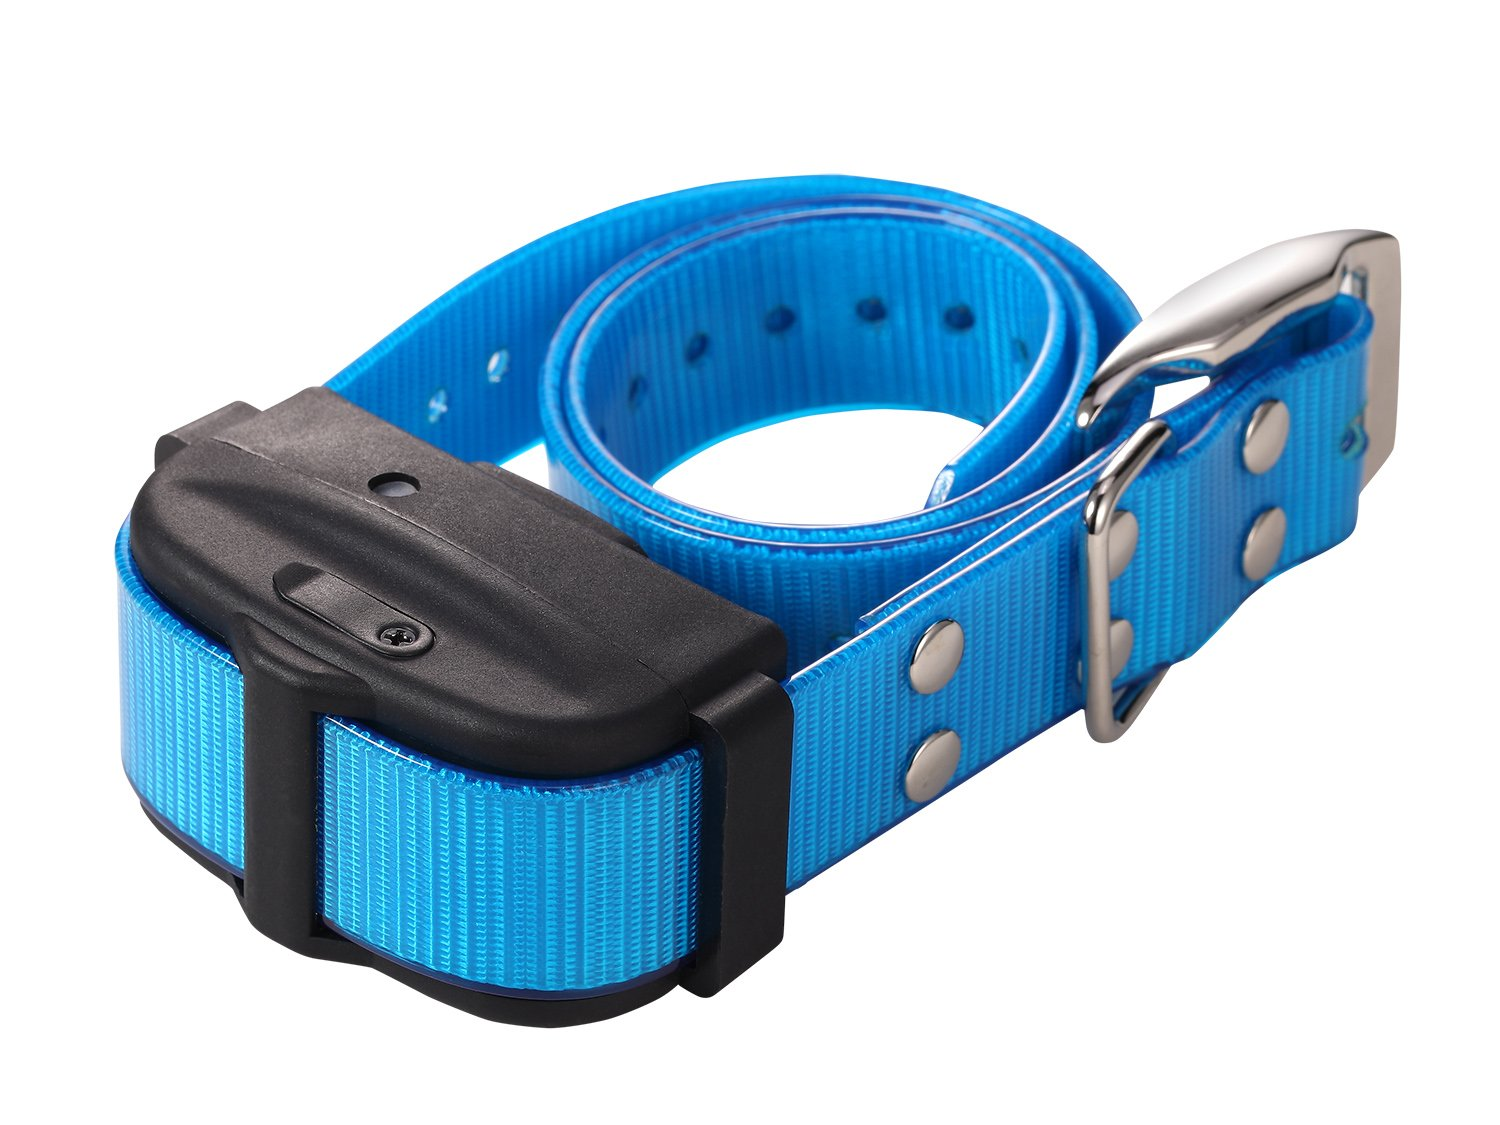 Pet Resolve Extra Dog Training Collar for the Shock and Vibration System (DT- V) with the Blue Border. by Pet Resolve